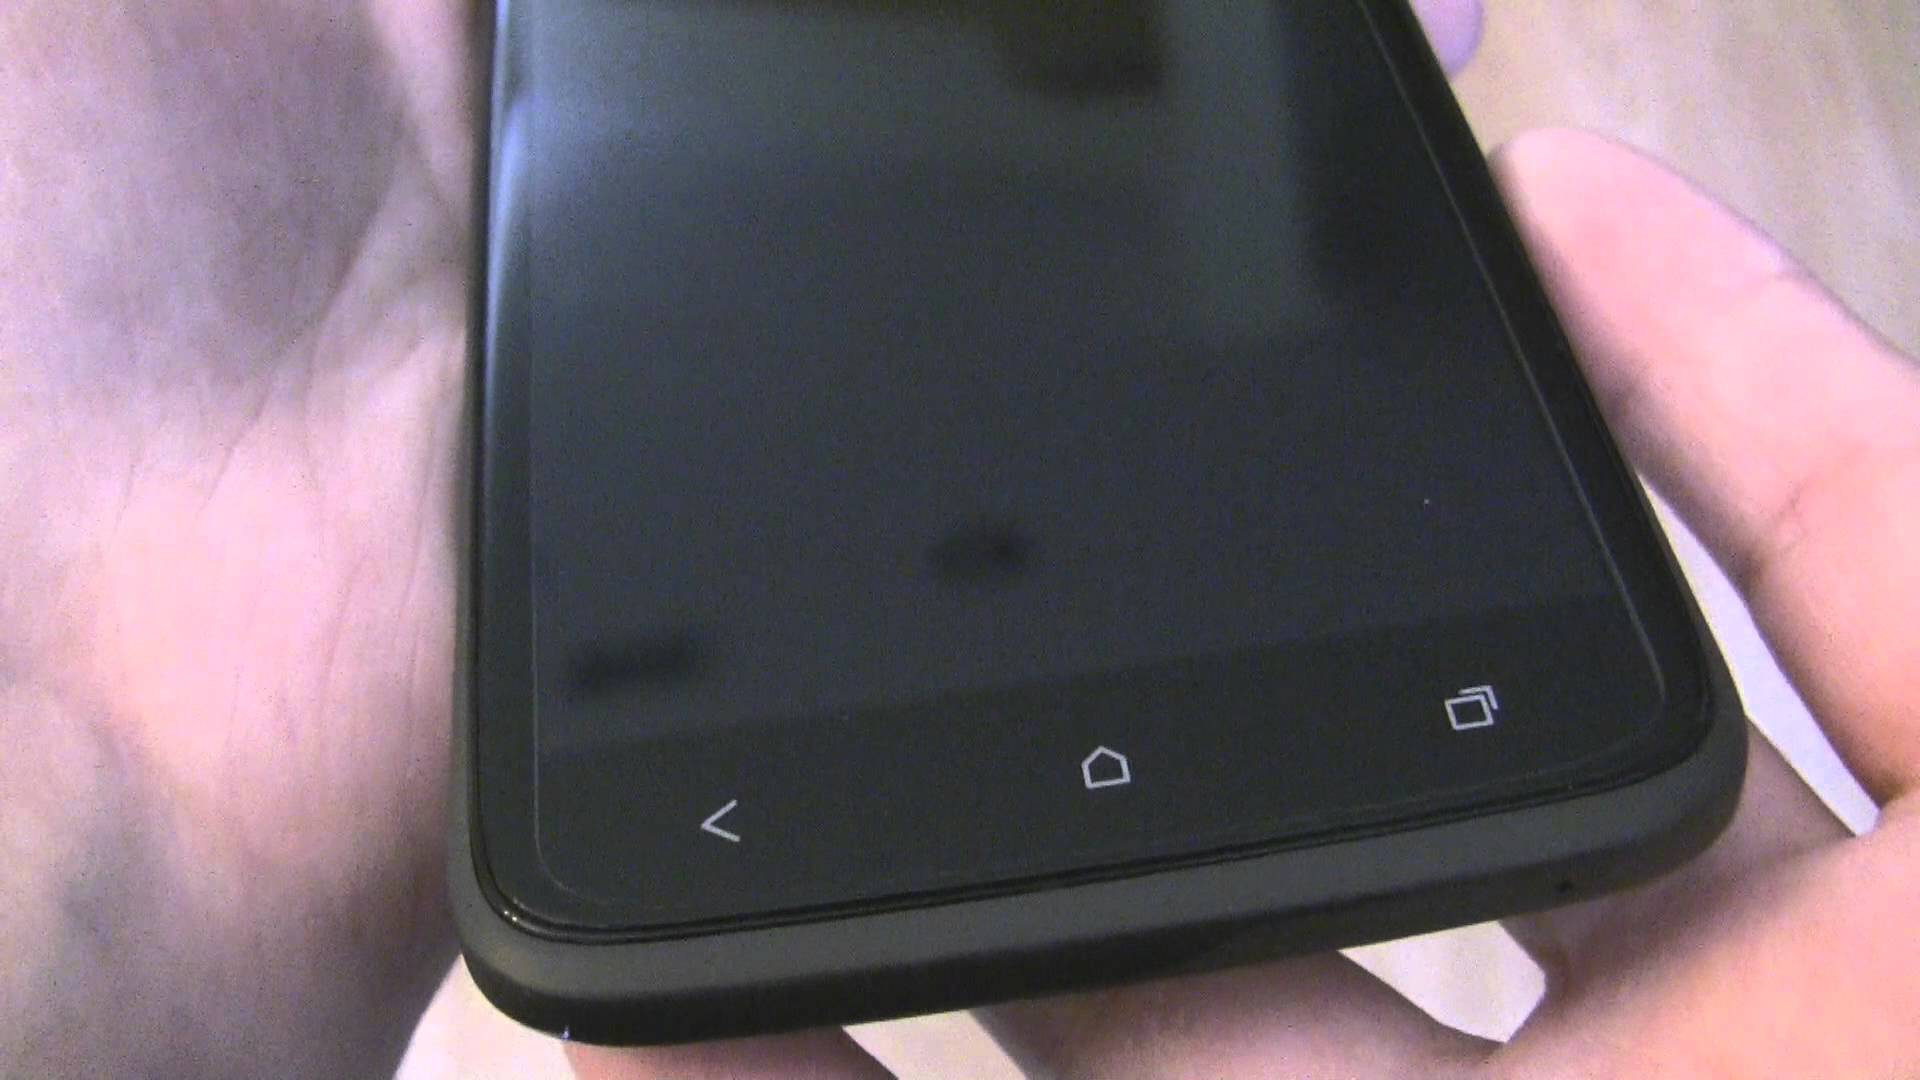 *HTC ONE X* Spigen SGP Ultra Oleophobic Screen Protector REVIEW